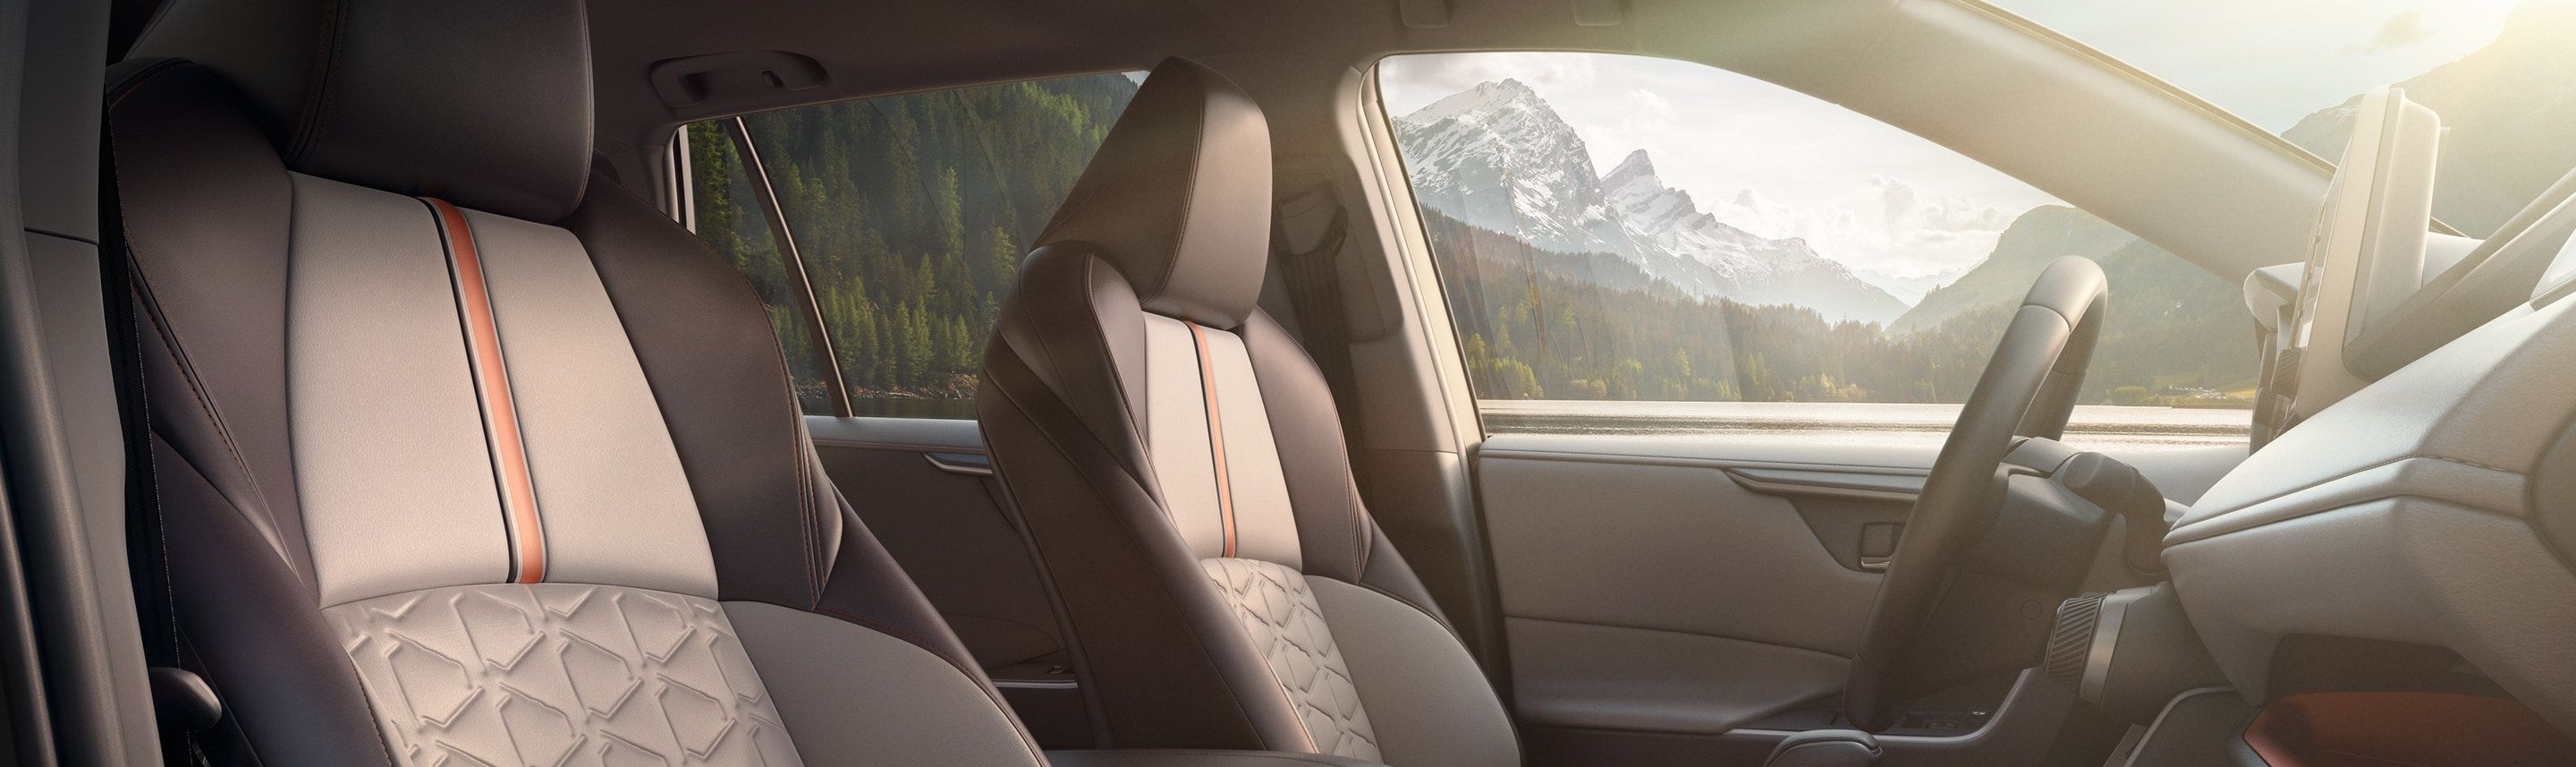 Front Seats of the 2019 RAV4